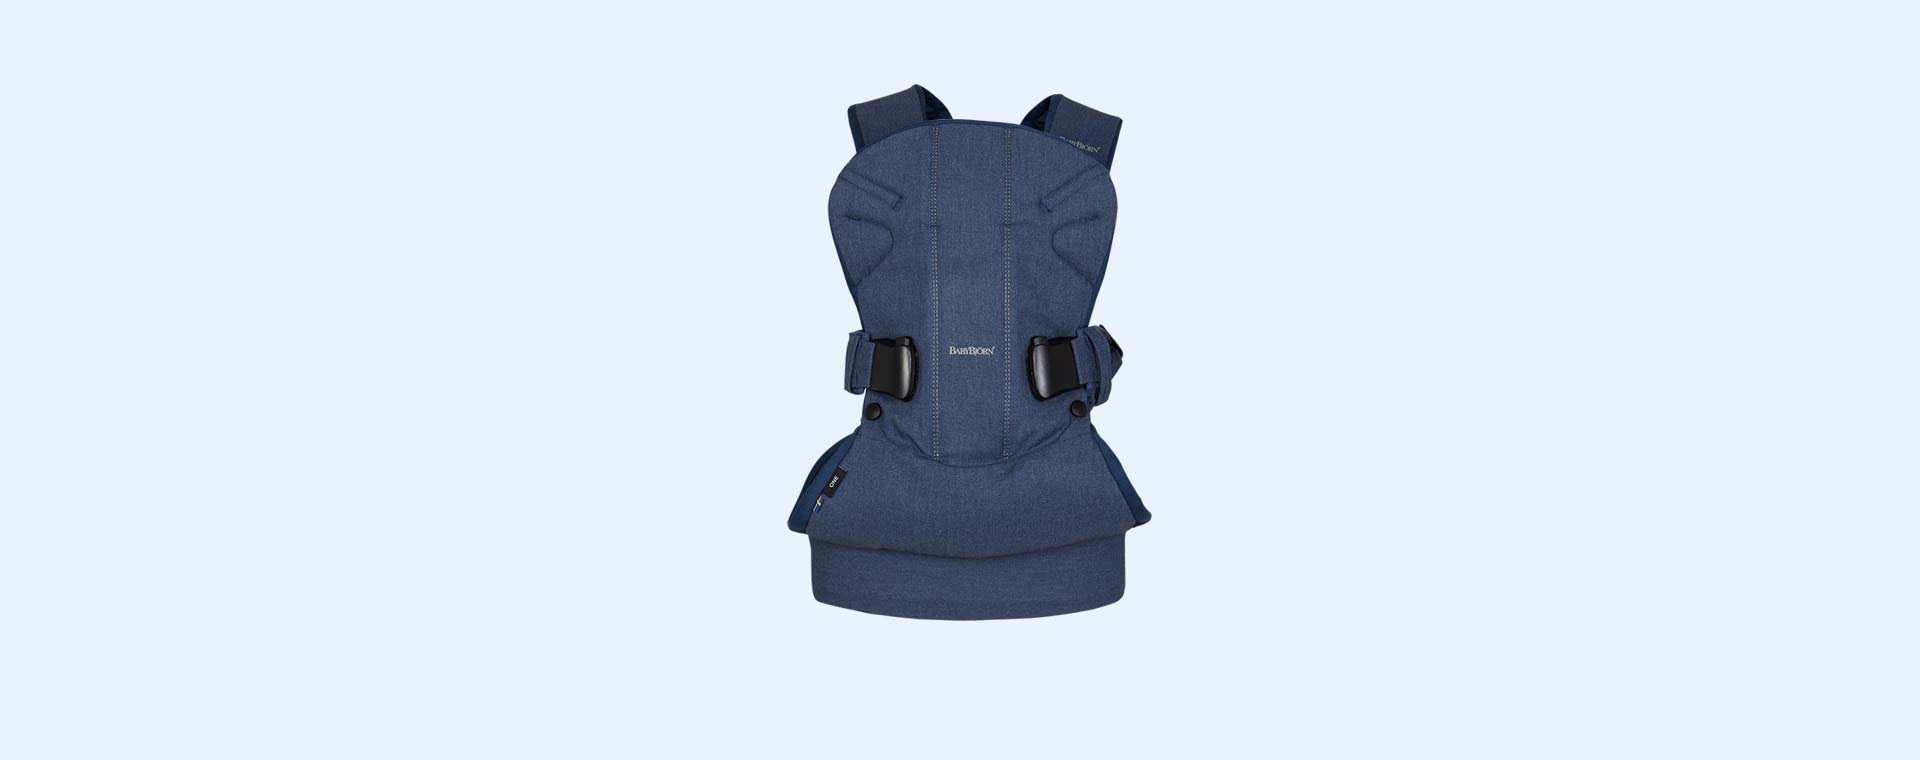 Buy the BabyBjorn Baby Carrier One at KIDLY UK